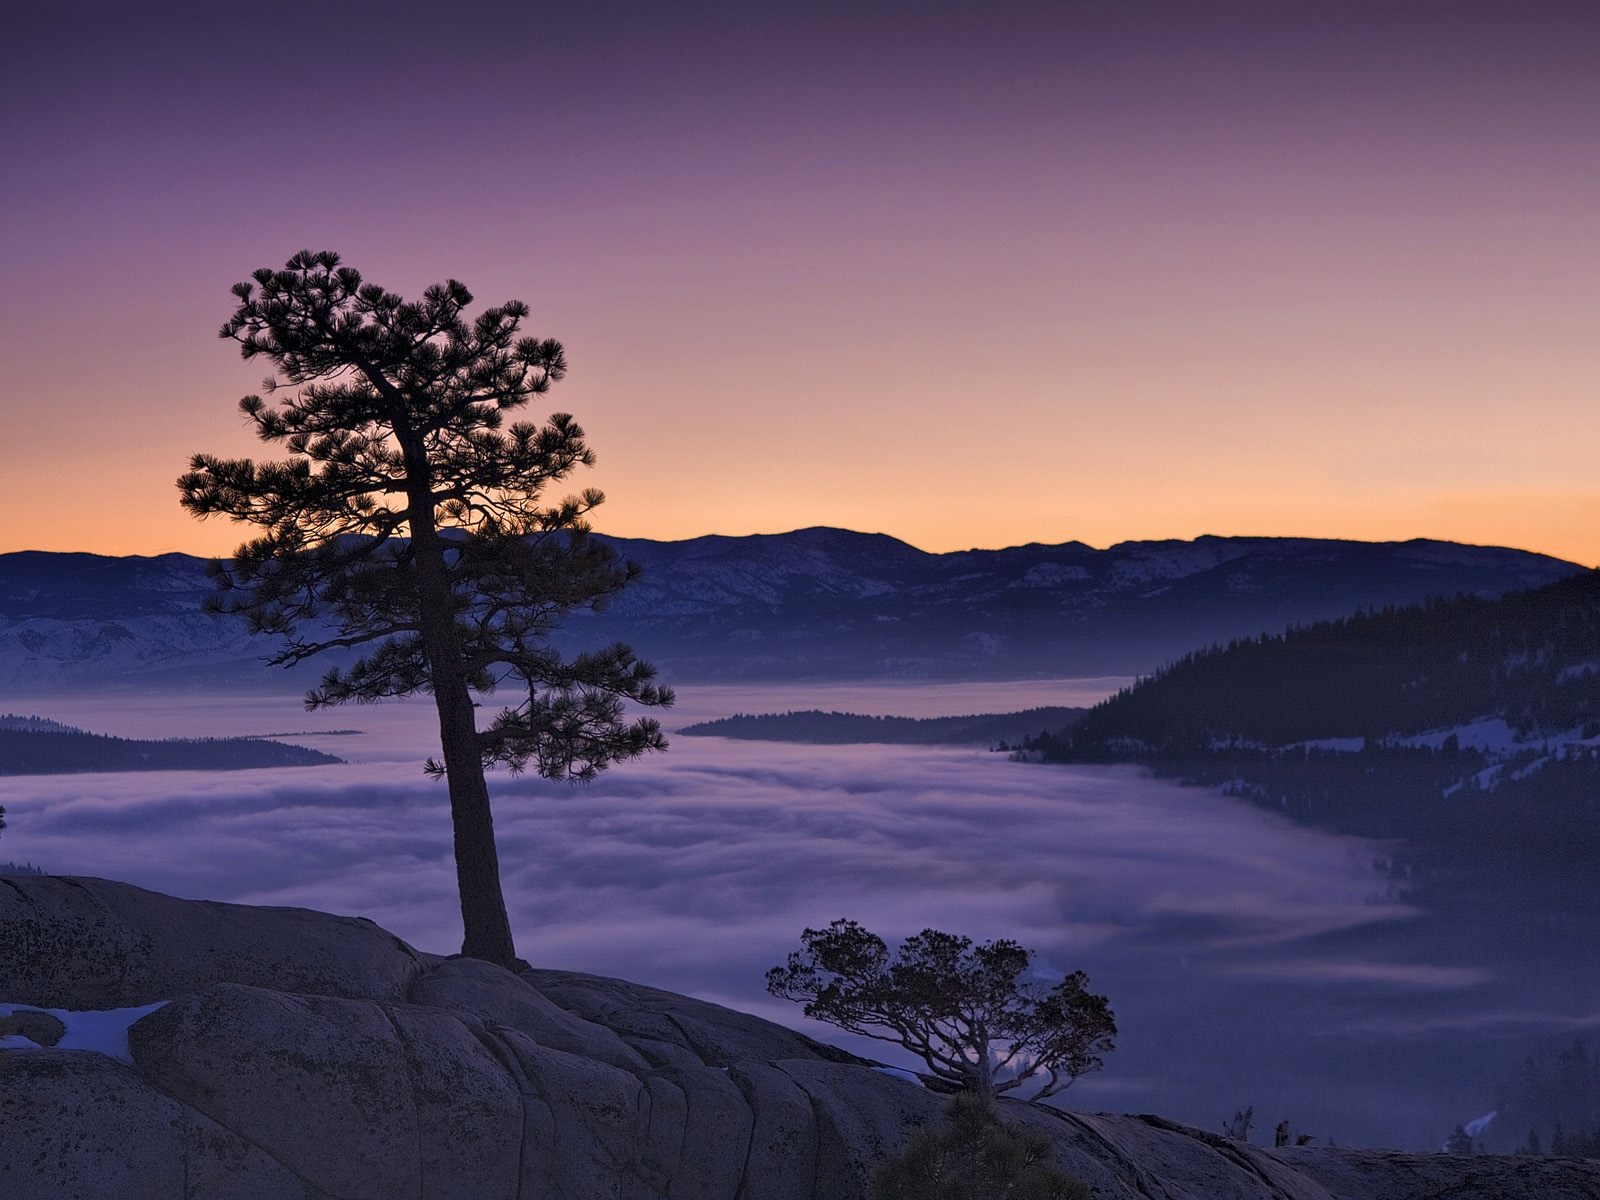 Tree, fog, mountains, dawn 1600x1200 wallpaper